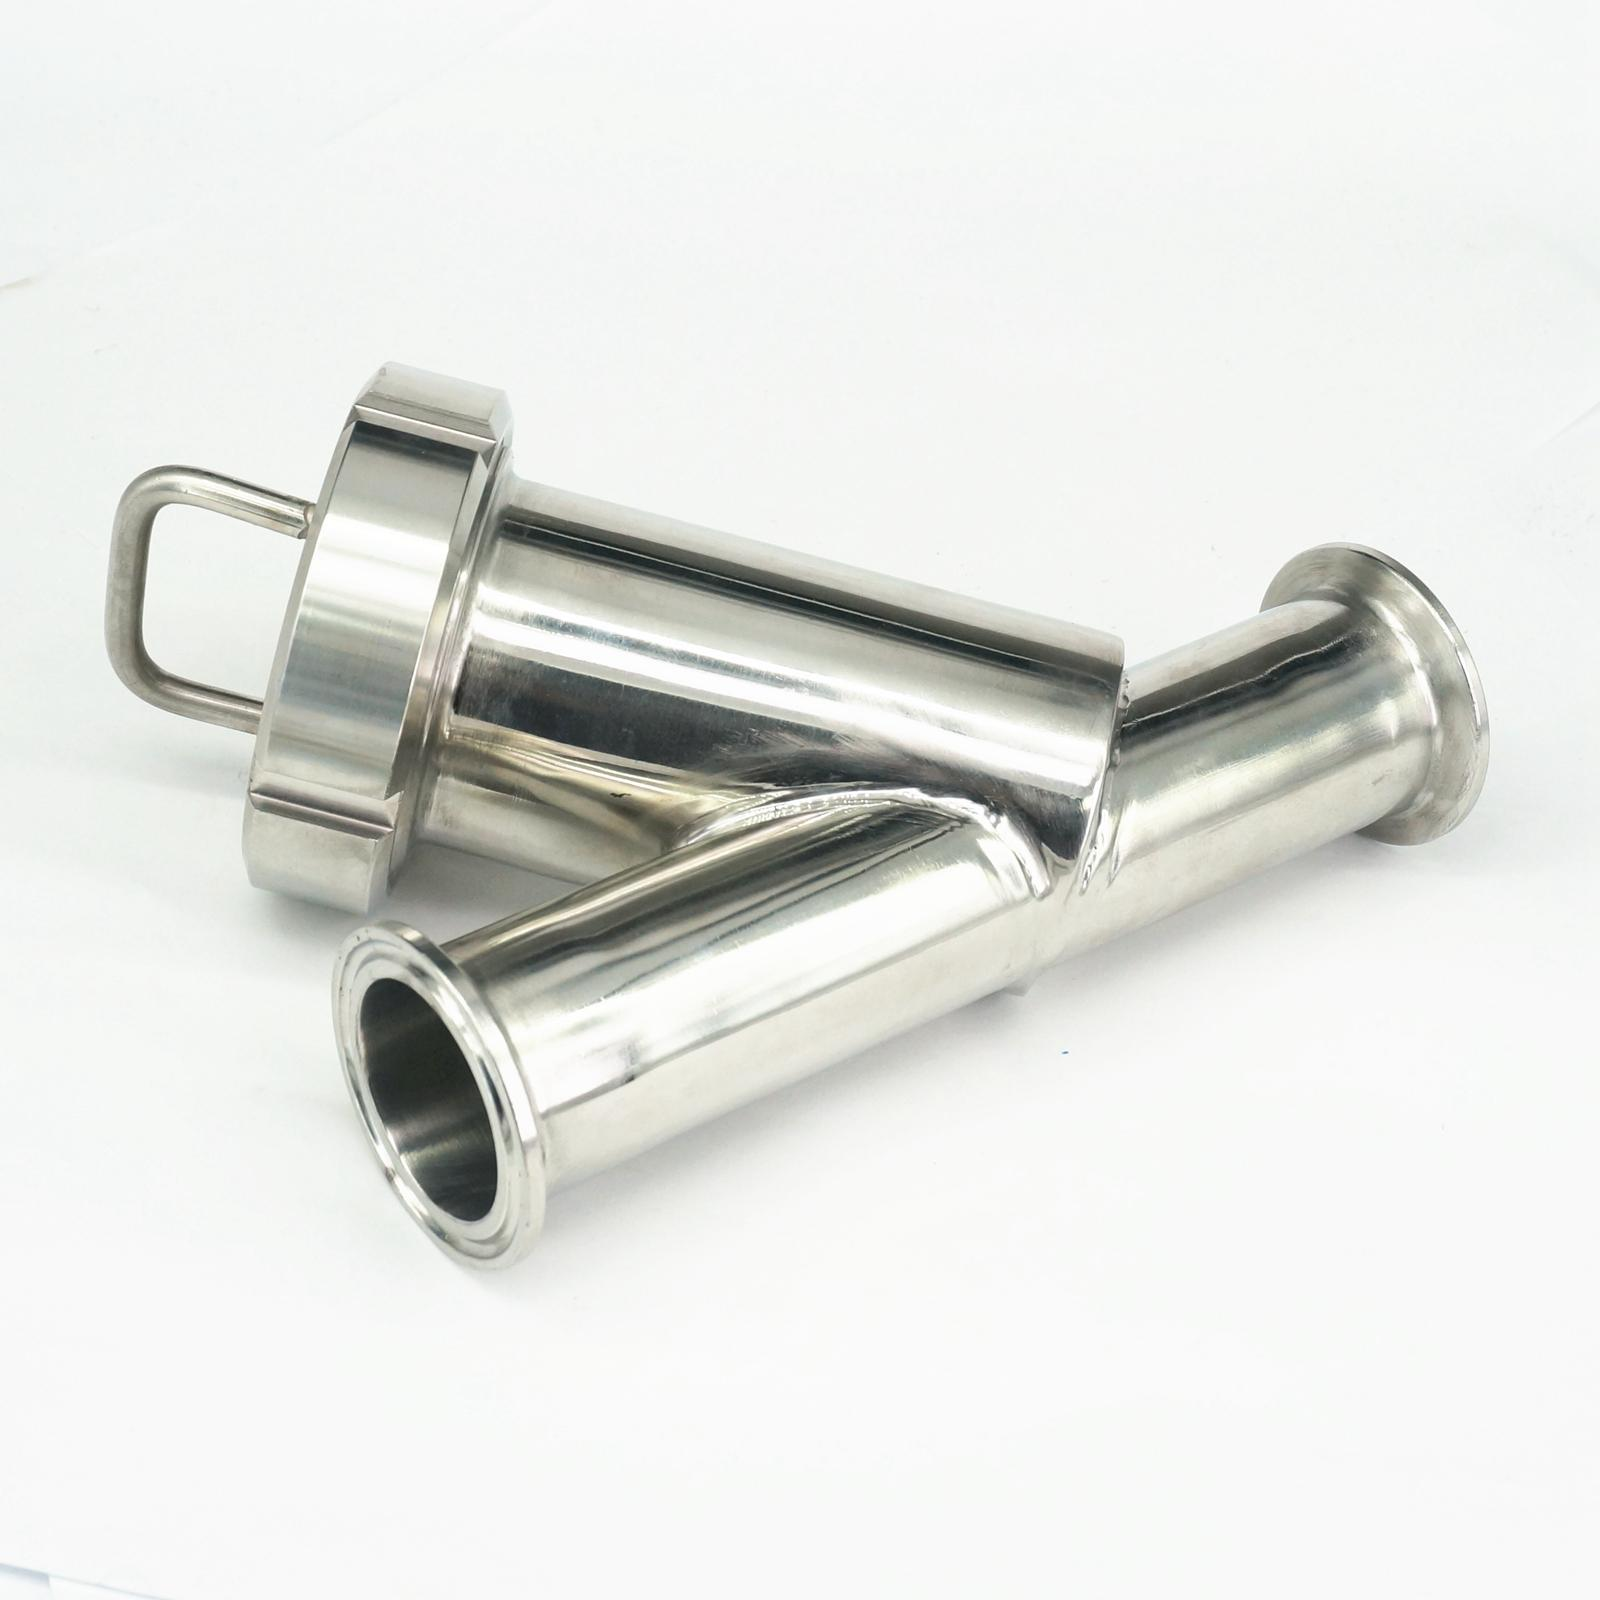 Fit 38mm Pipe OD x 1.5 Tri Clamp SUS304 Sanitary Y Type Strainer Filter Home Brew Wine 1pc 63mm od sanitary check valve tri clamp type stainless steel ss sus 304